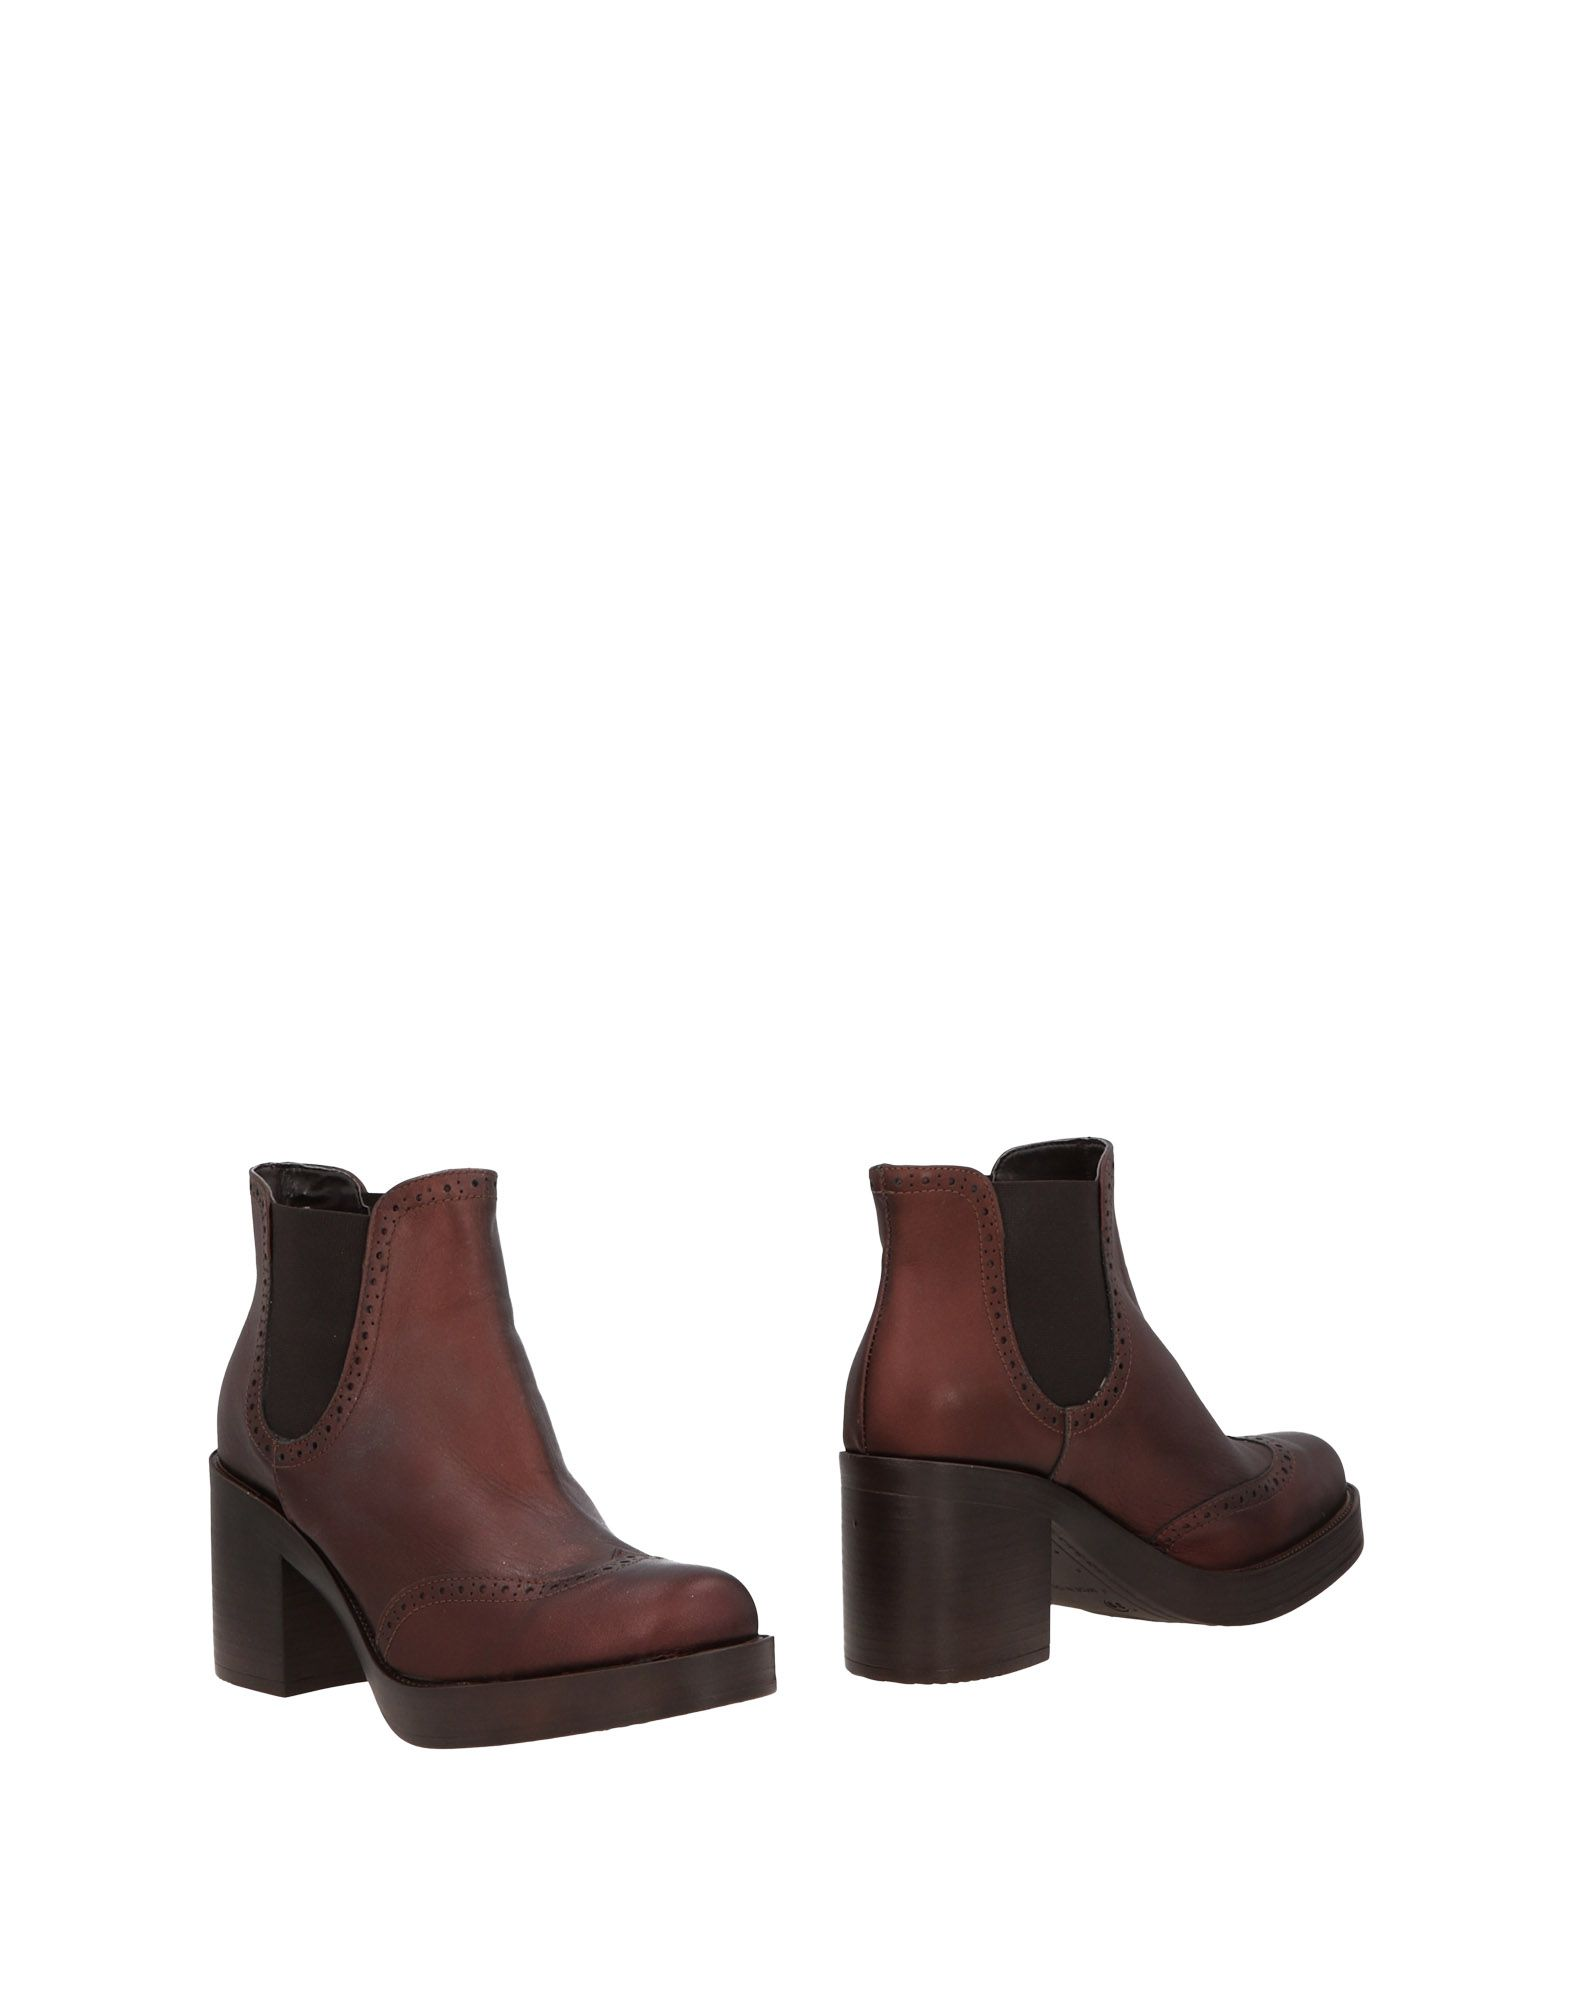 Formentini Ankle Boot - Women Formentini Ankle Boots online 11479153XE on  Australia - 11479153XE online 948e09